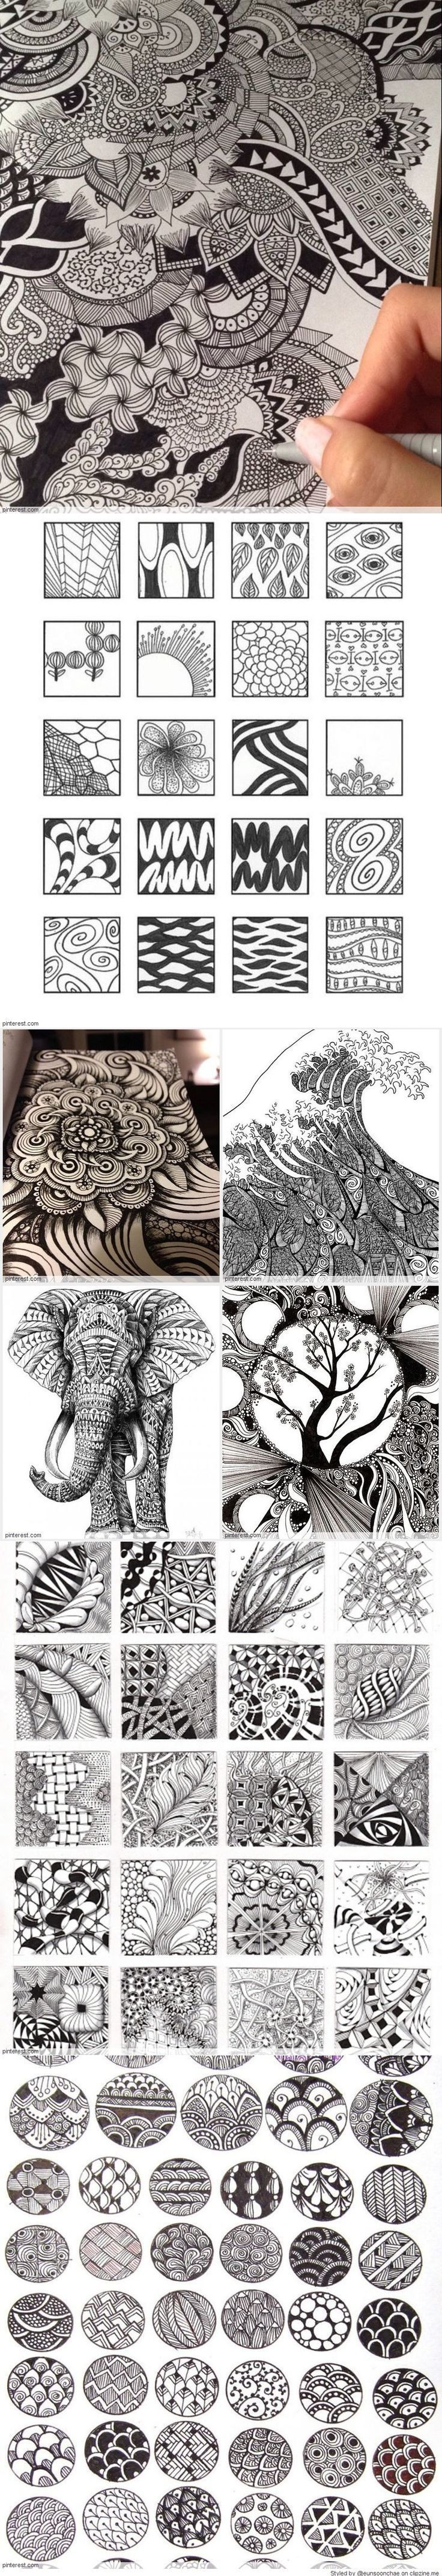 Zentangle Patterns & Ideas I did not realize all the patterns had names!!: